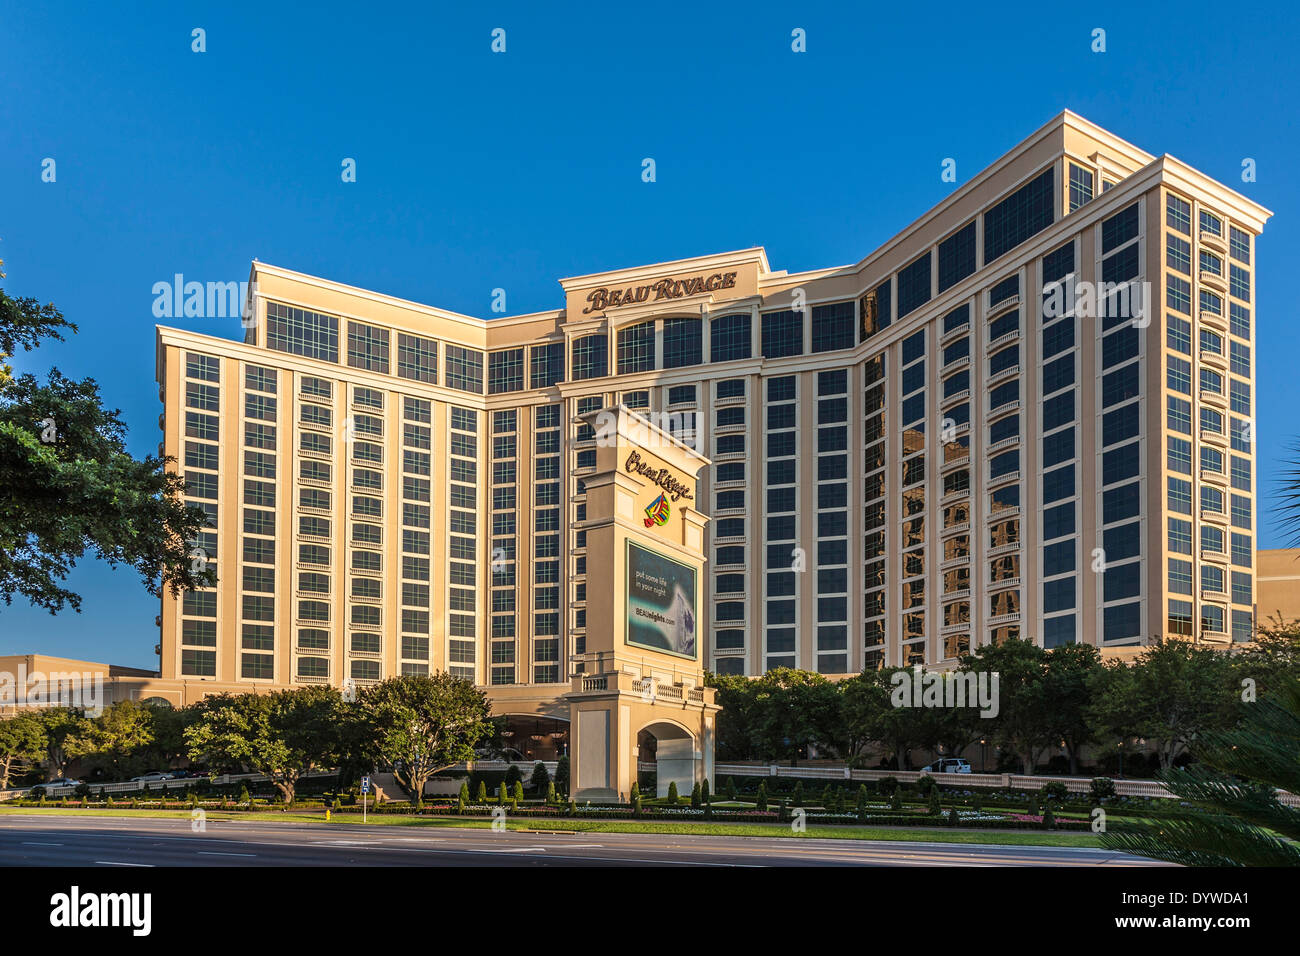 Beau Rivage Hotel And Casino On The Mississippi Gulf Coast At